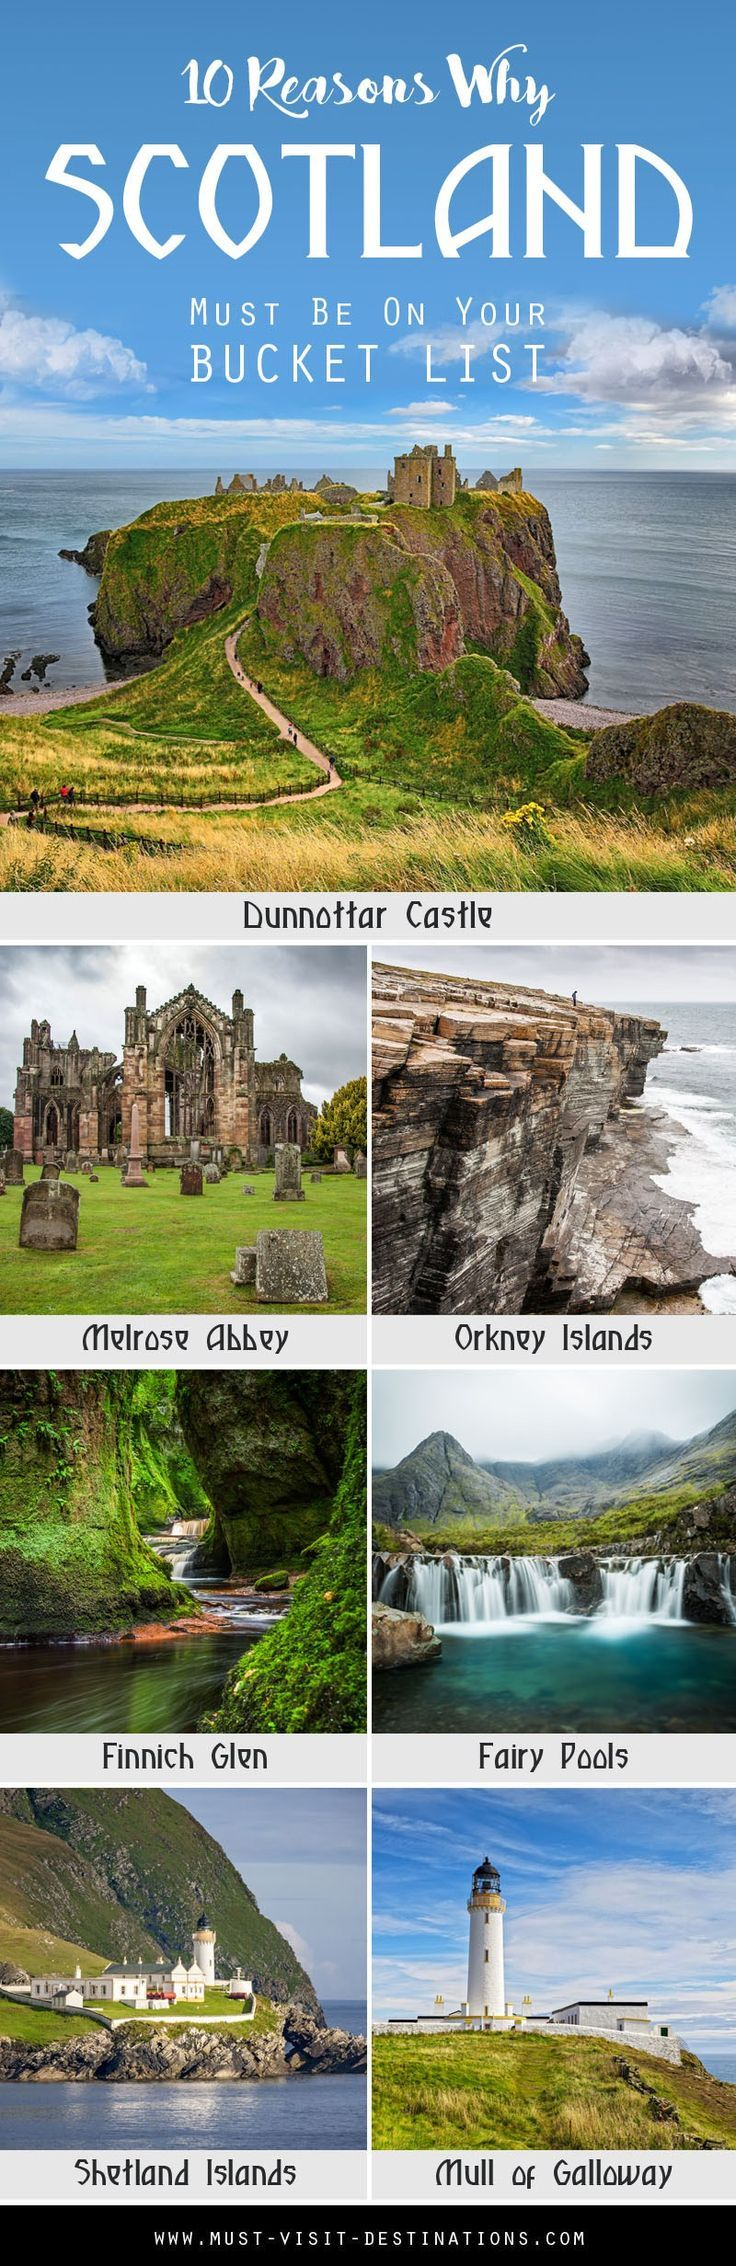 Are you wondering which #travel destination you should visit this year? Here are 10 Reasons Why Scotland Must Be On Your Bucket List.#Scotland #Travel #Europe